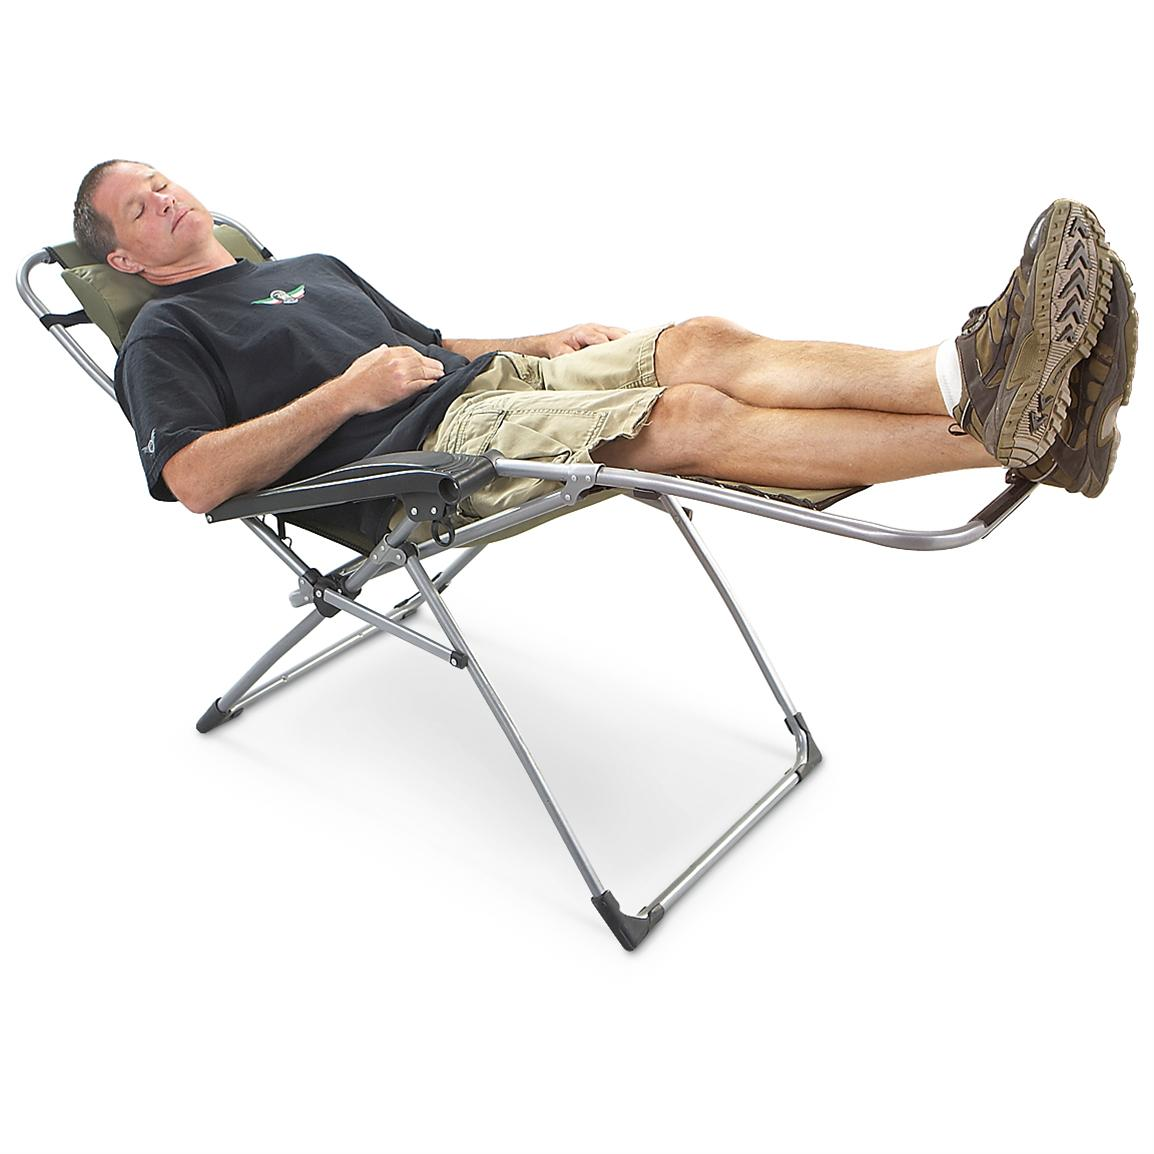 anti gravity lawn chair dental dimensions mac sports lounger 190321 chairs at